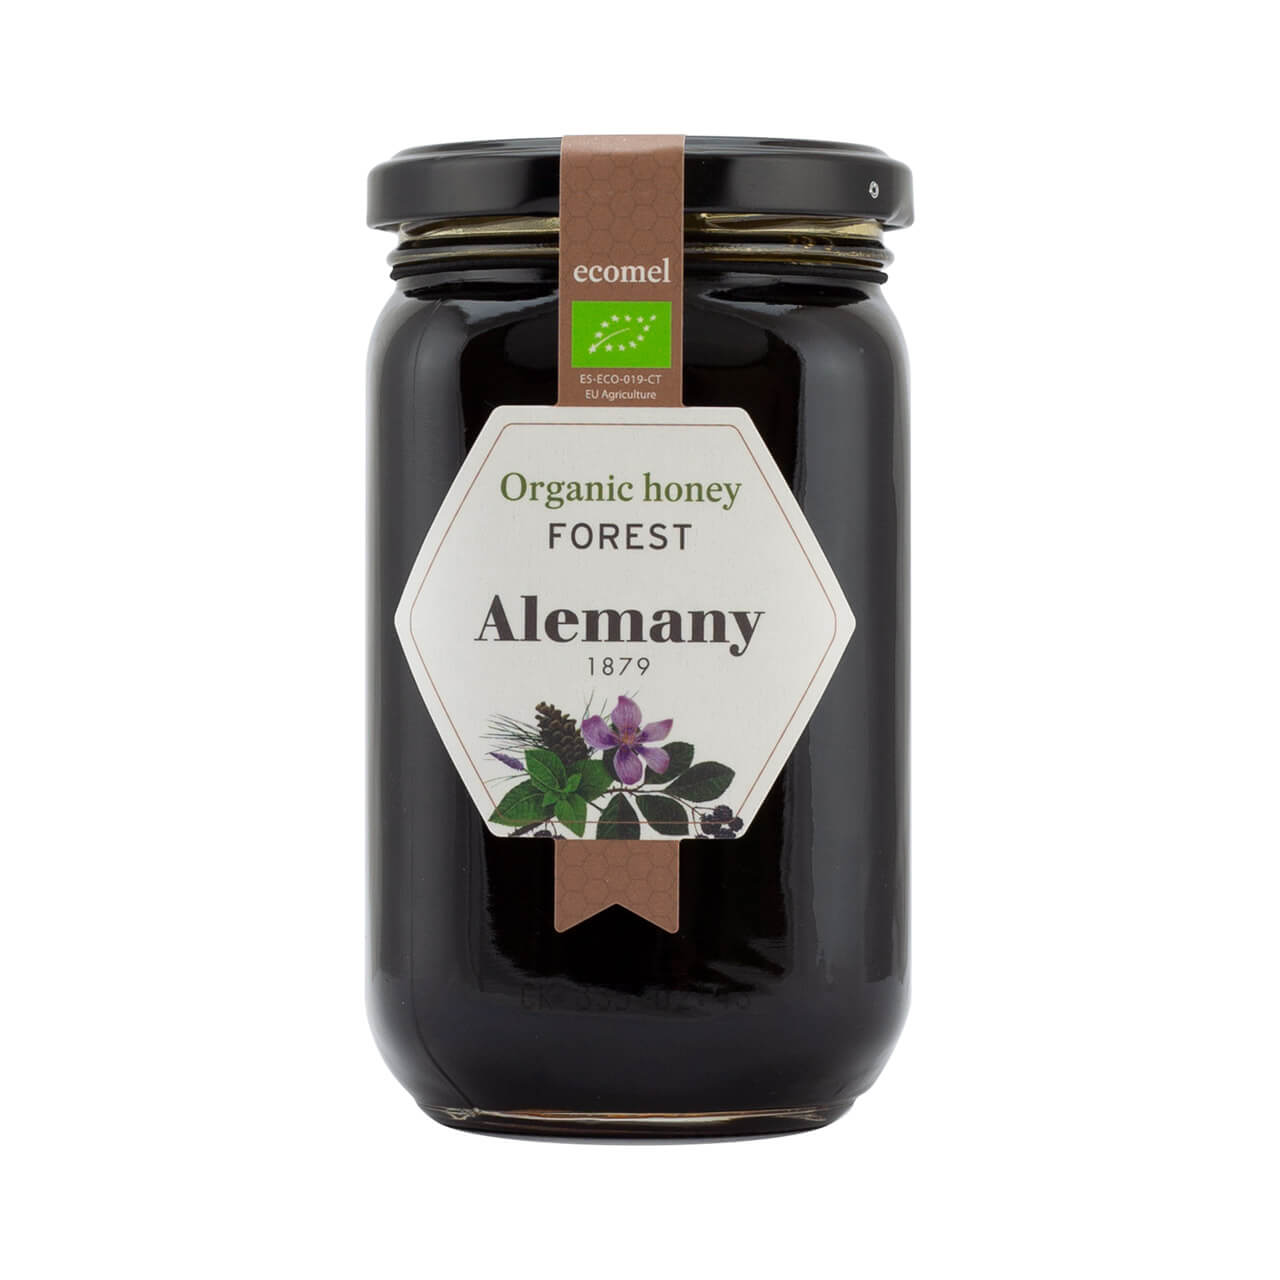 alemany organic honey forest